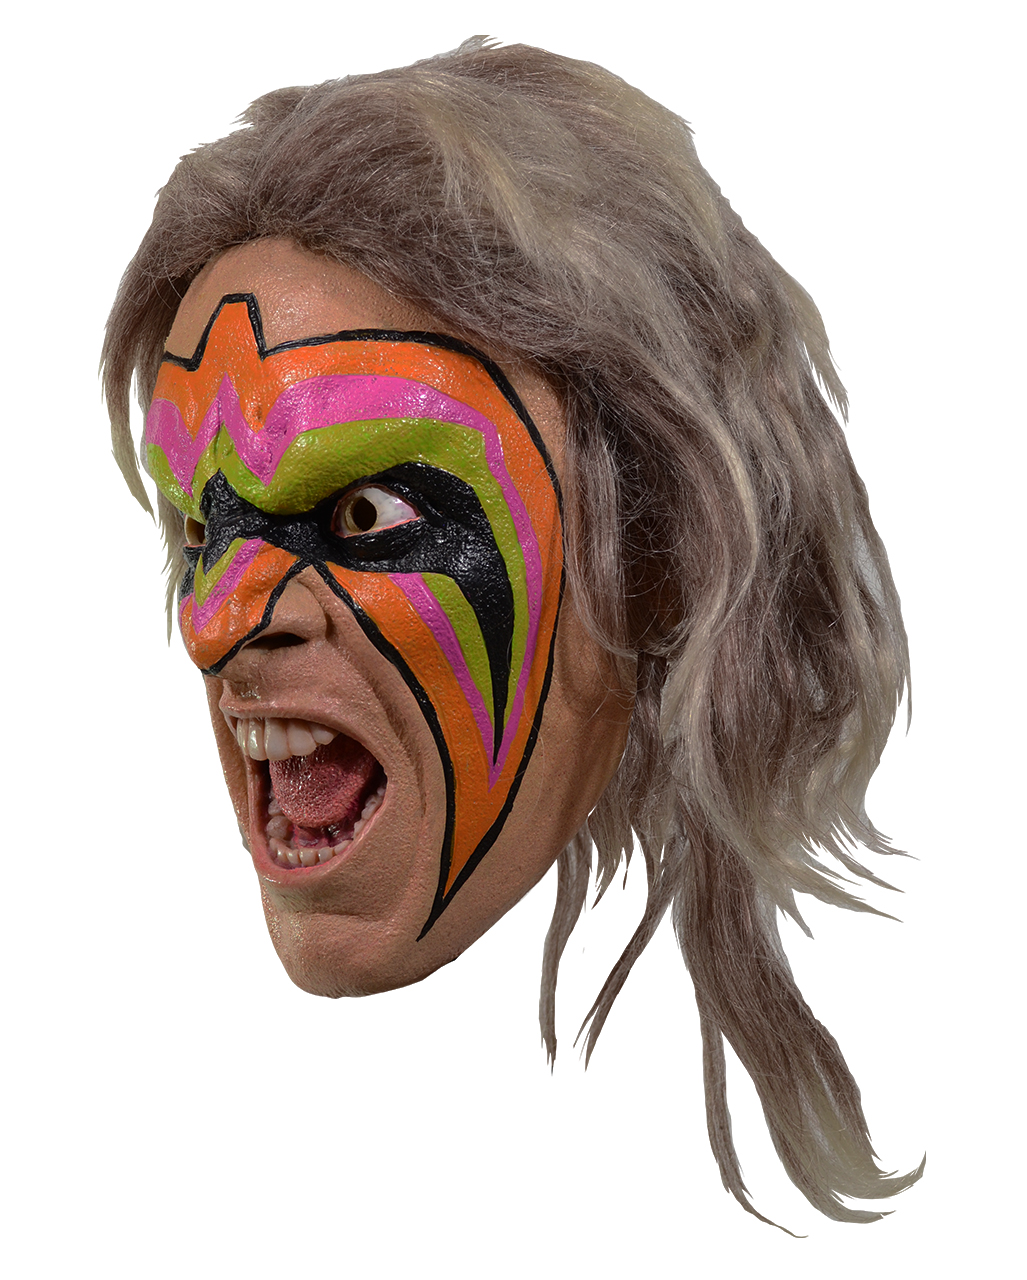 Wwe Ultimate Warrior Mask Wrestler Latex Mask Horror Shopcom